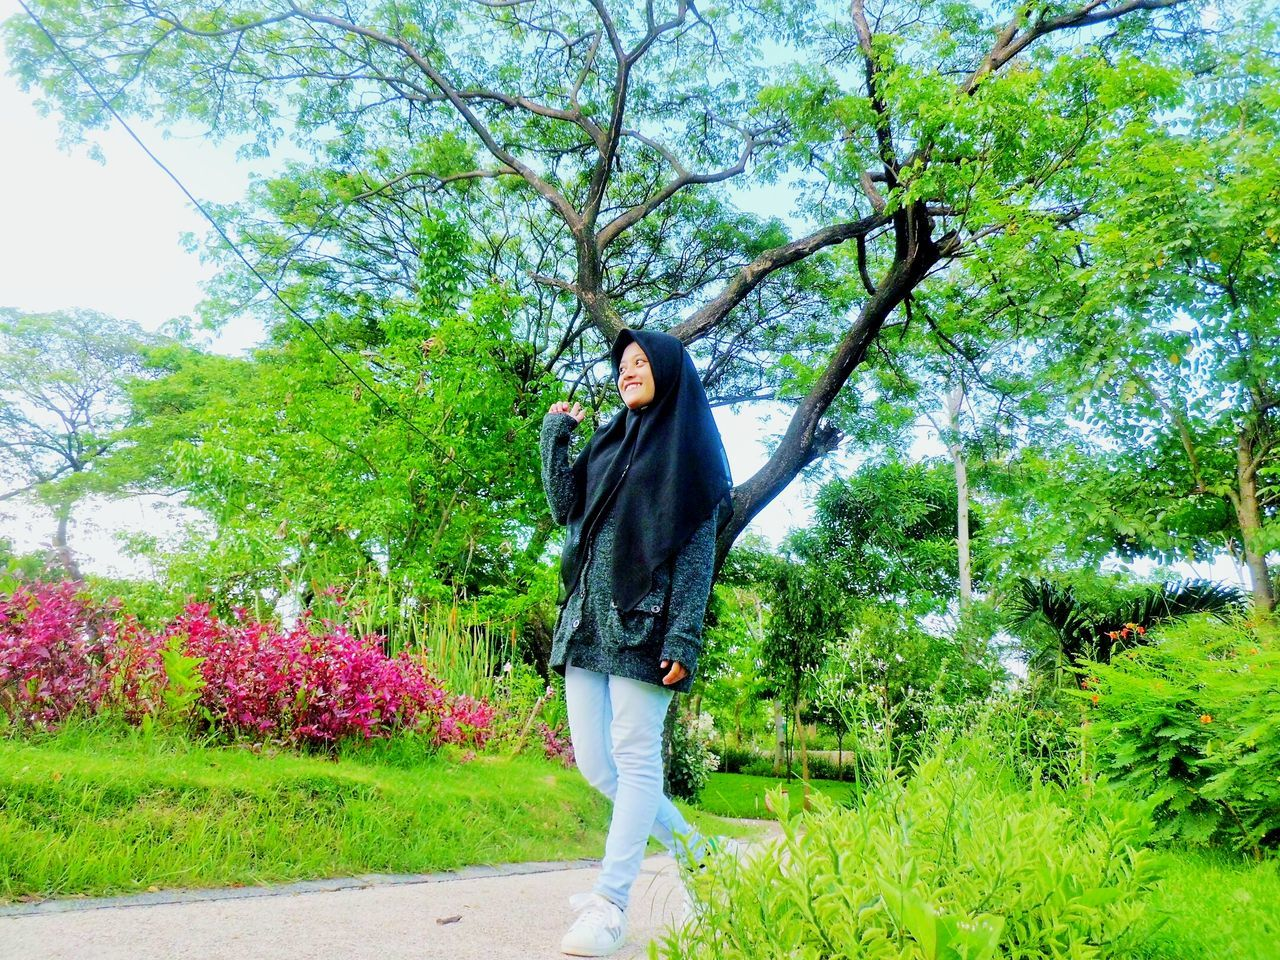 tree, one person, full length, real people, casual clothing, young adult, young women, growth, nature, front view, standing, day, plant, outdoors, leisure activity, flower, beautiful woman, lifestyles, grass, beauty in nature, people, adult